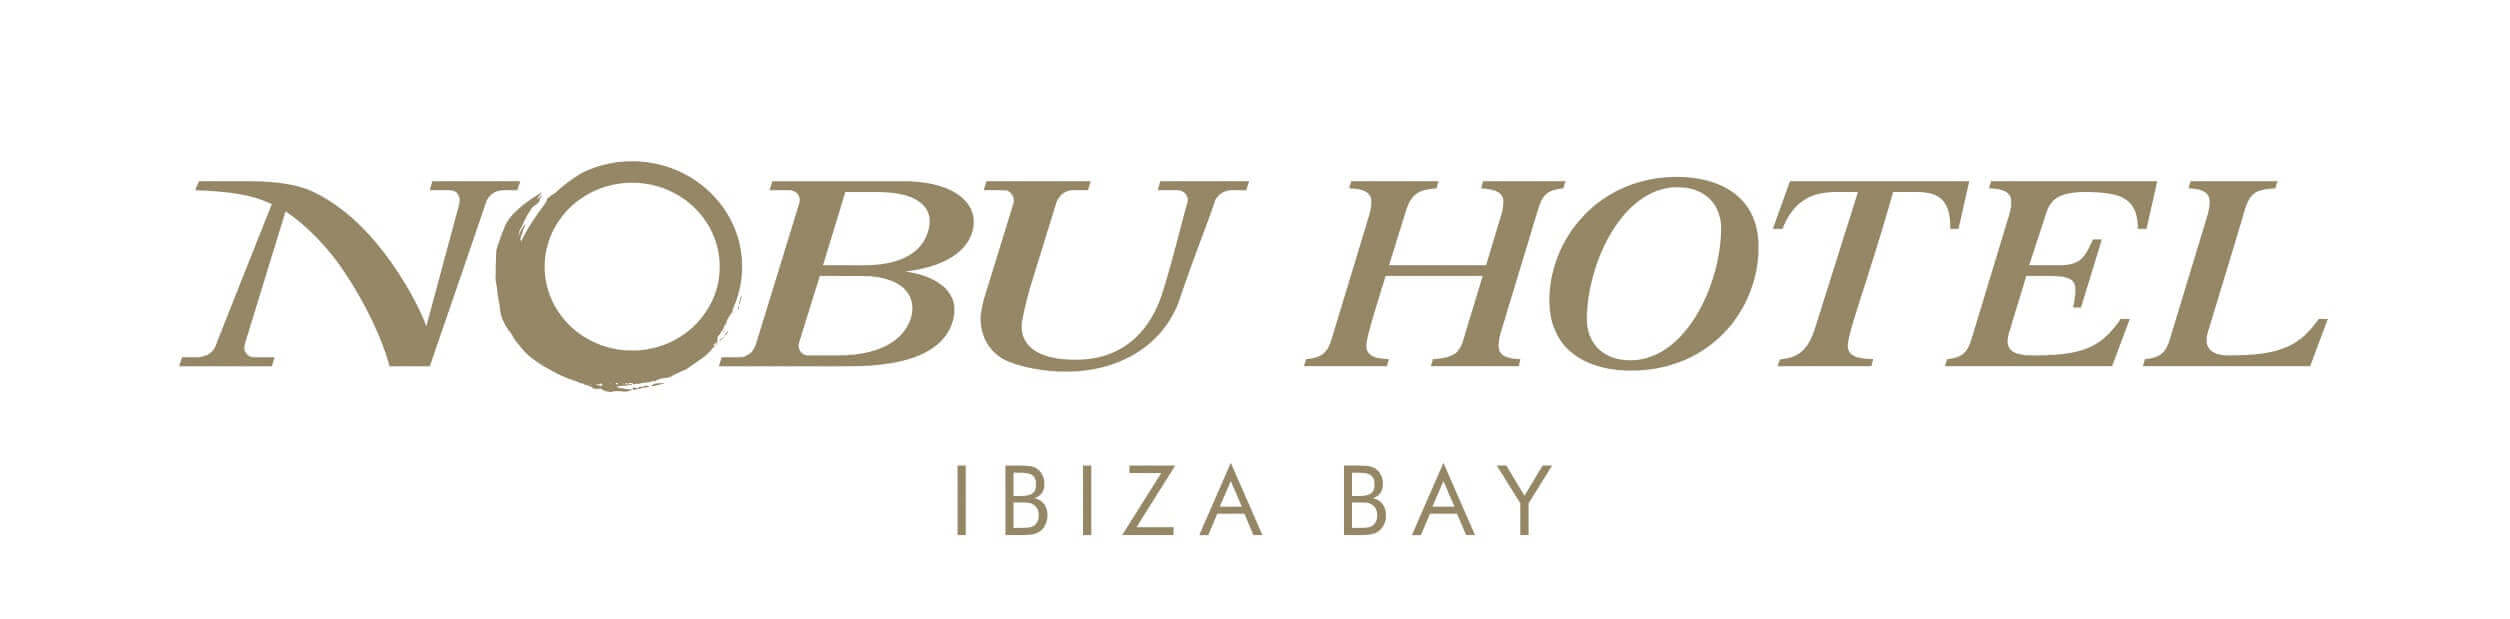 Nobu Hotel Ibiza Bay - D-Cars Airport and Transfers with Range Rover